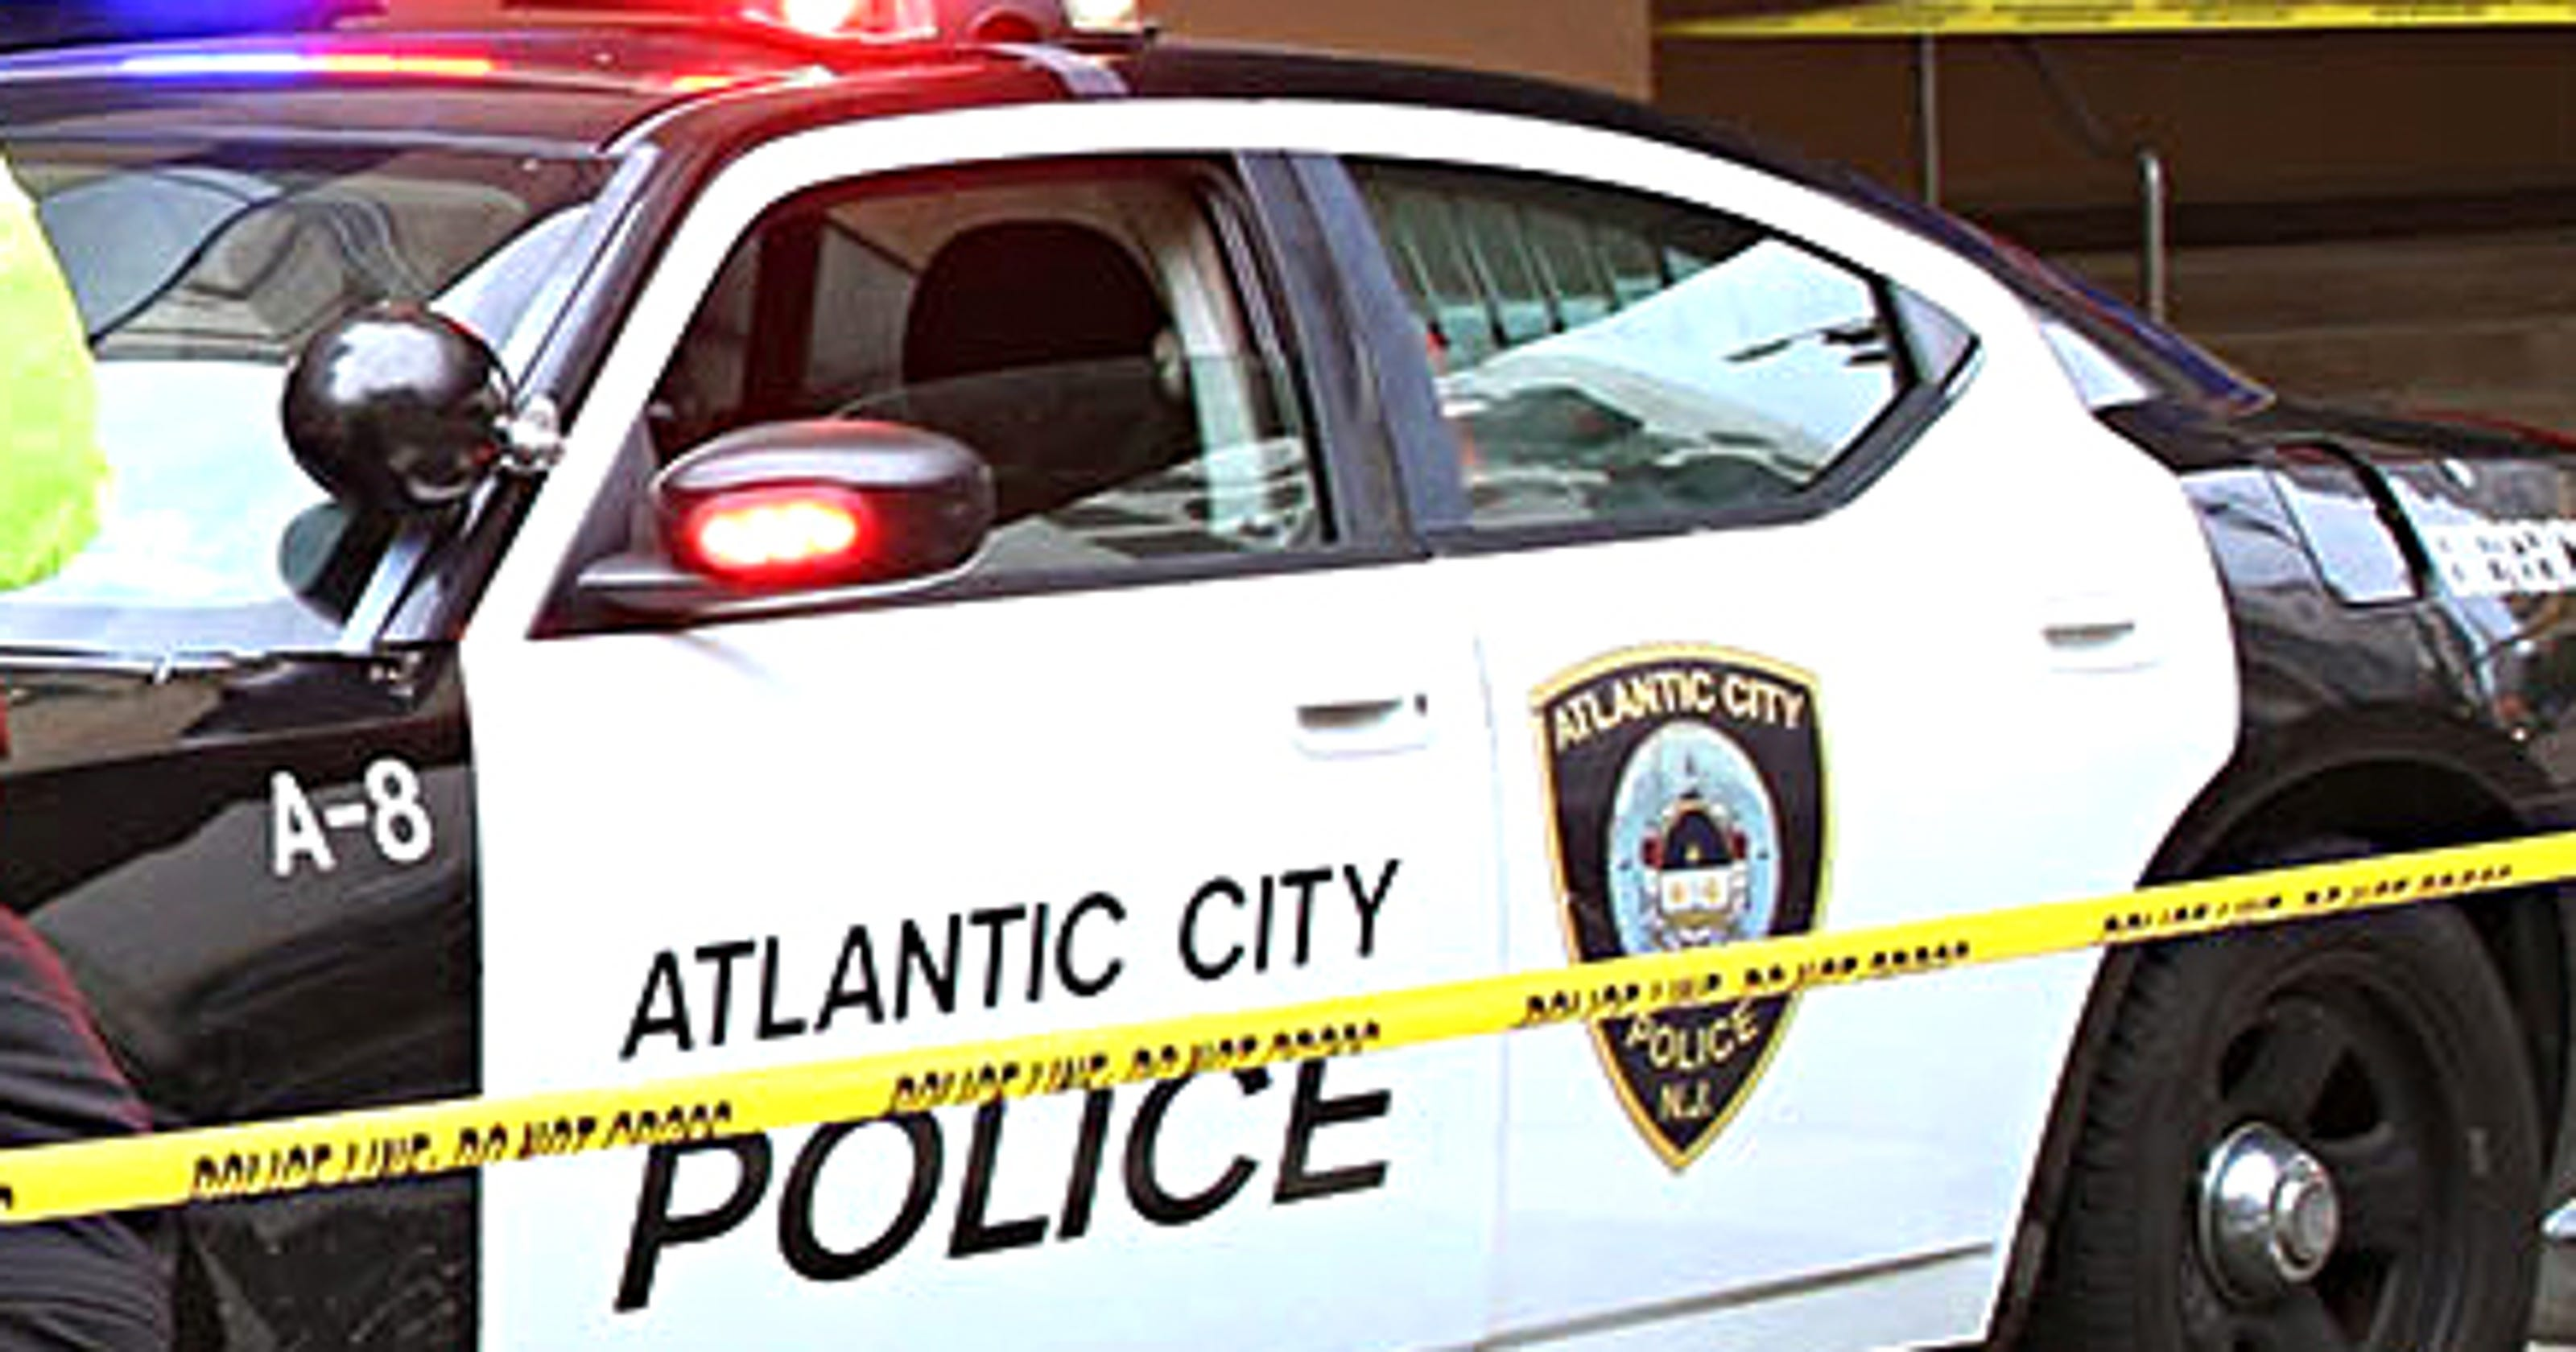 Leon Green of Vineland New Jersey arrested in Atlantic City shooting